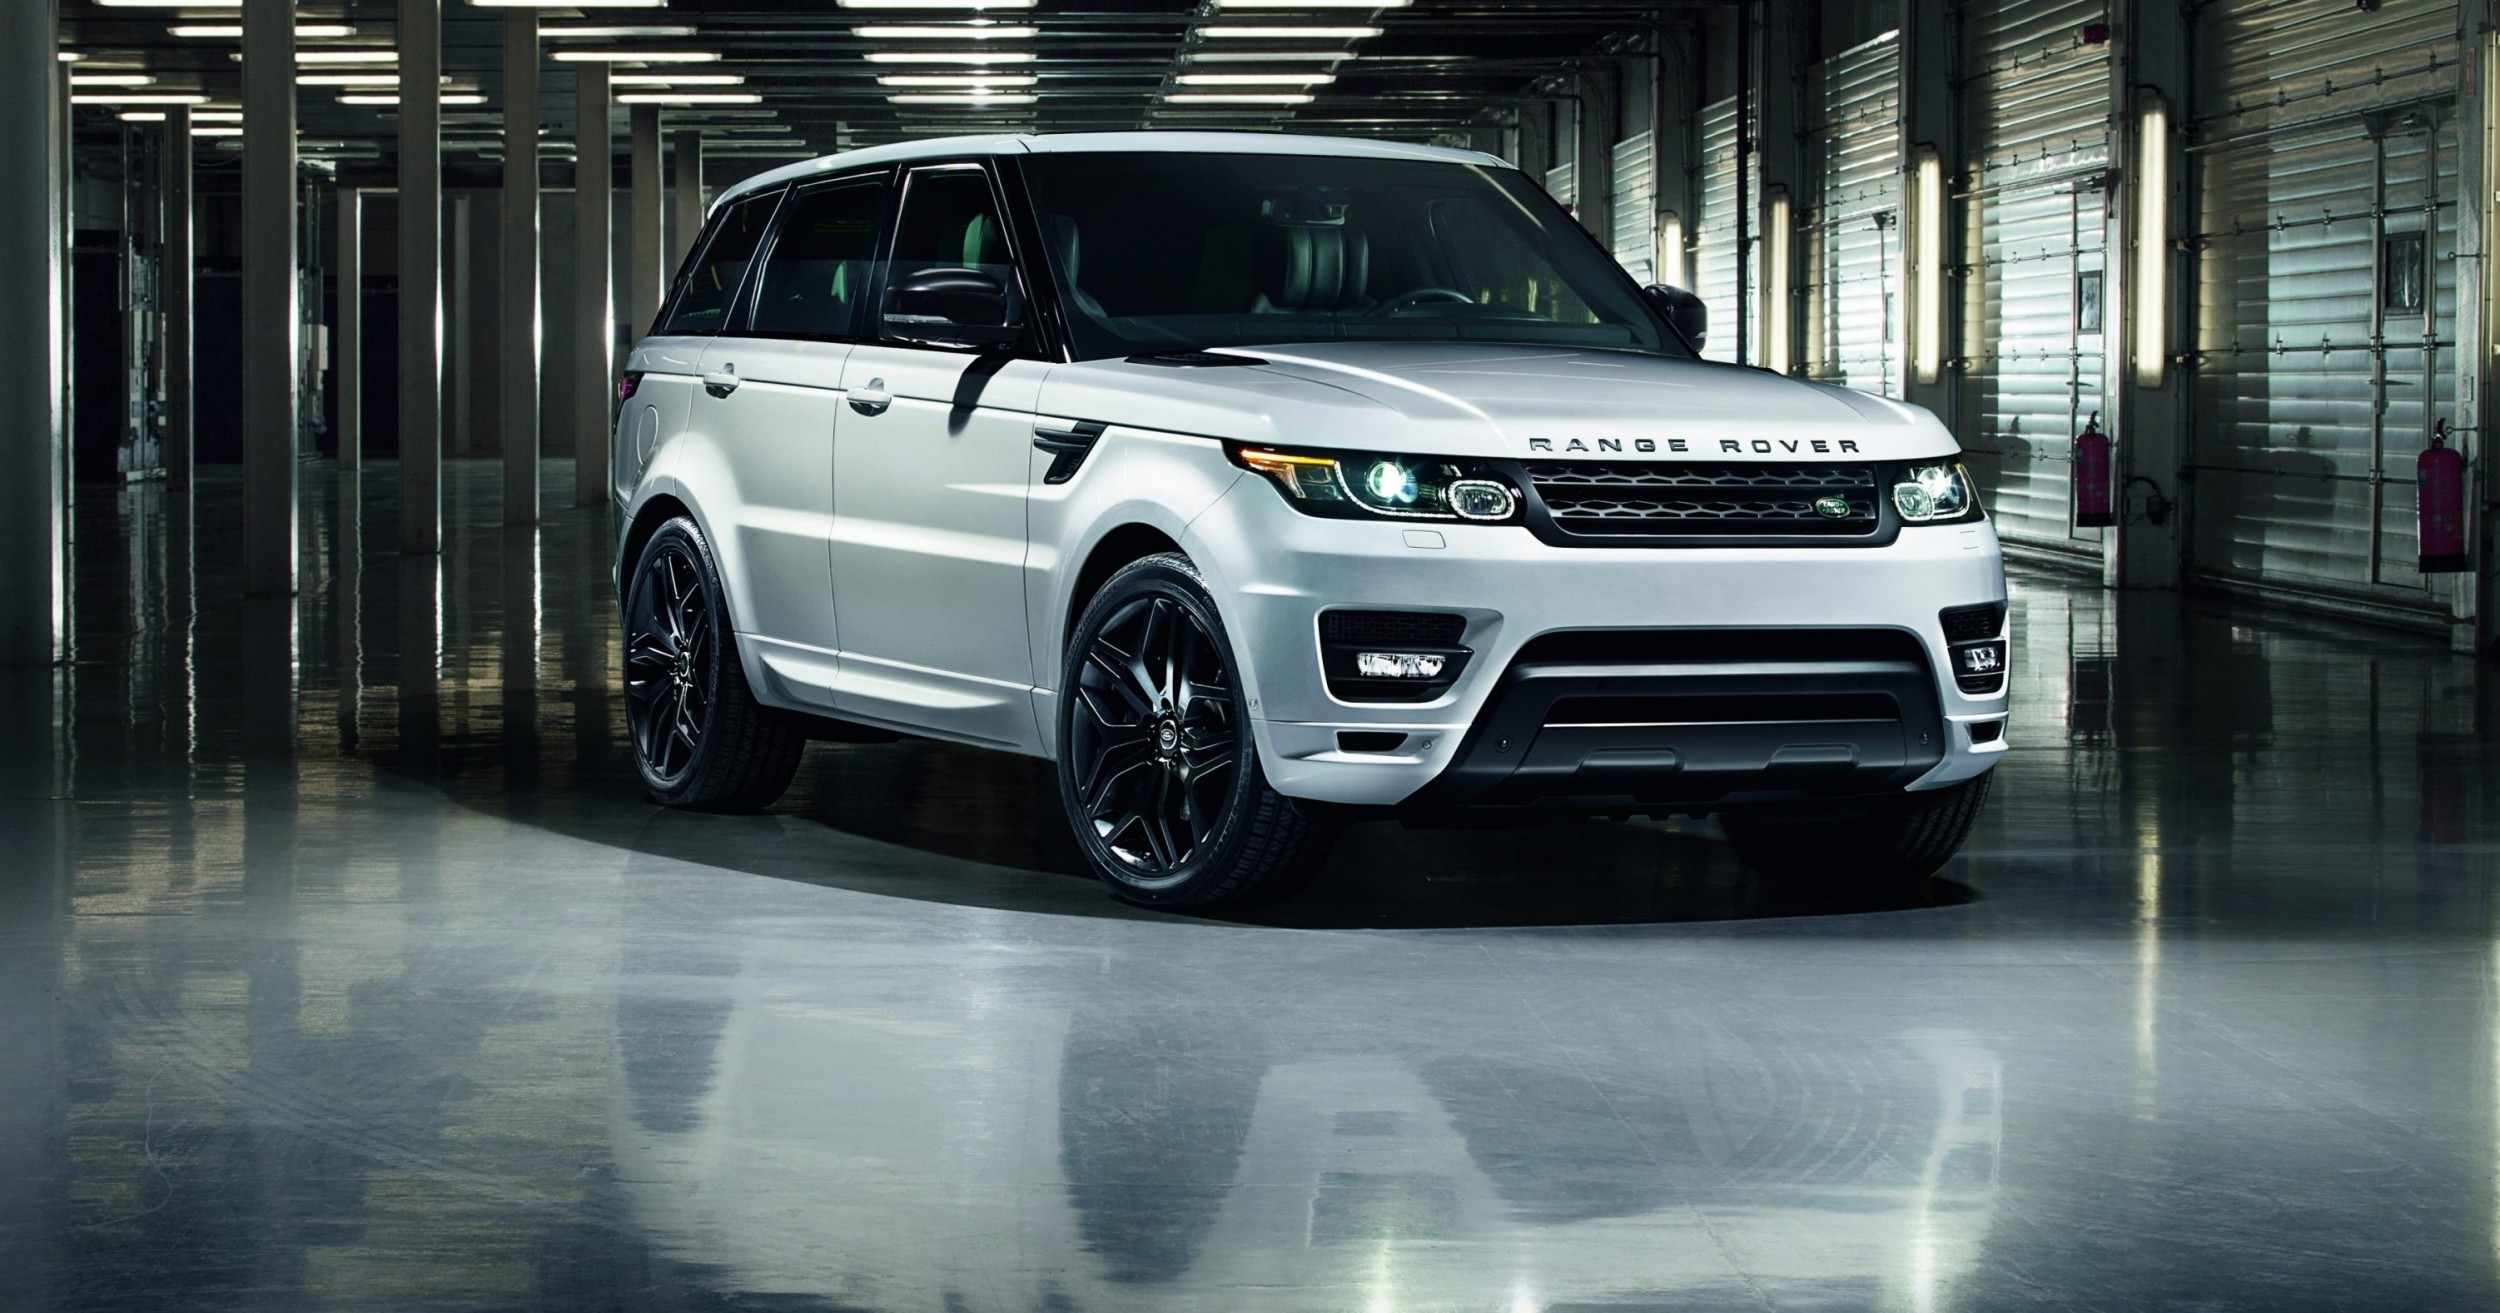 2014 Range Rover Sport Stealth Pack Brings Black 21s or 22 inch